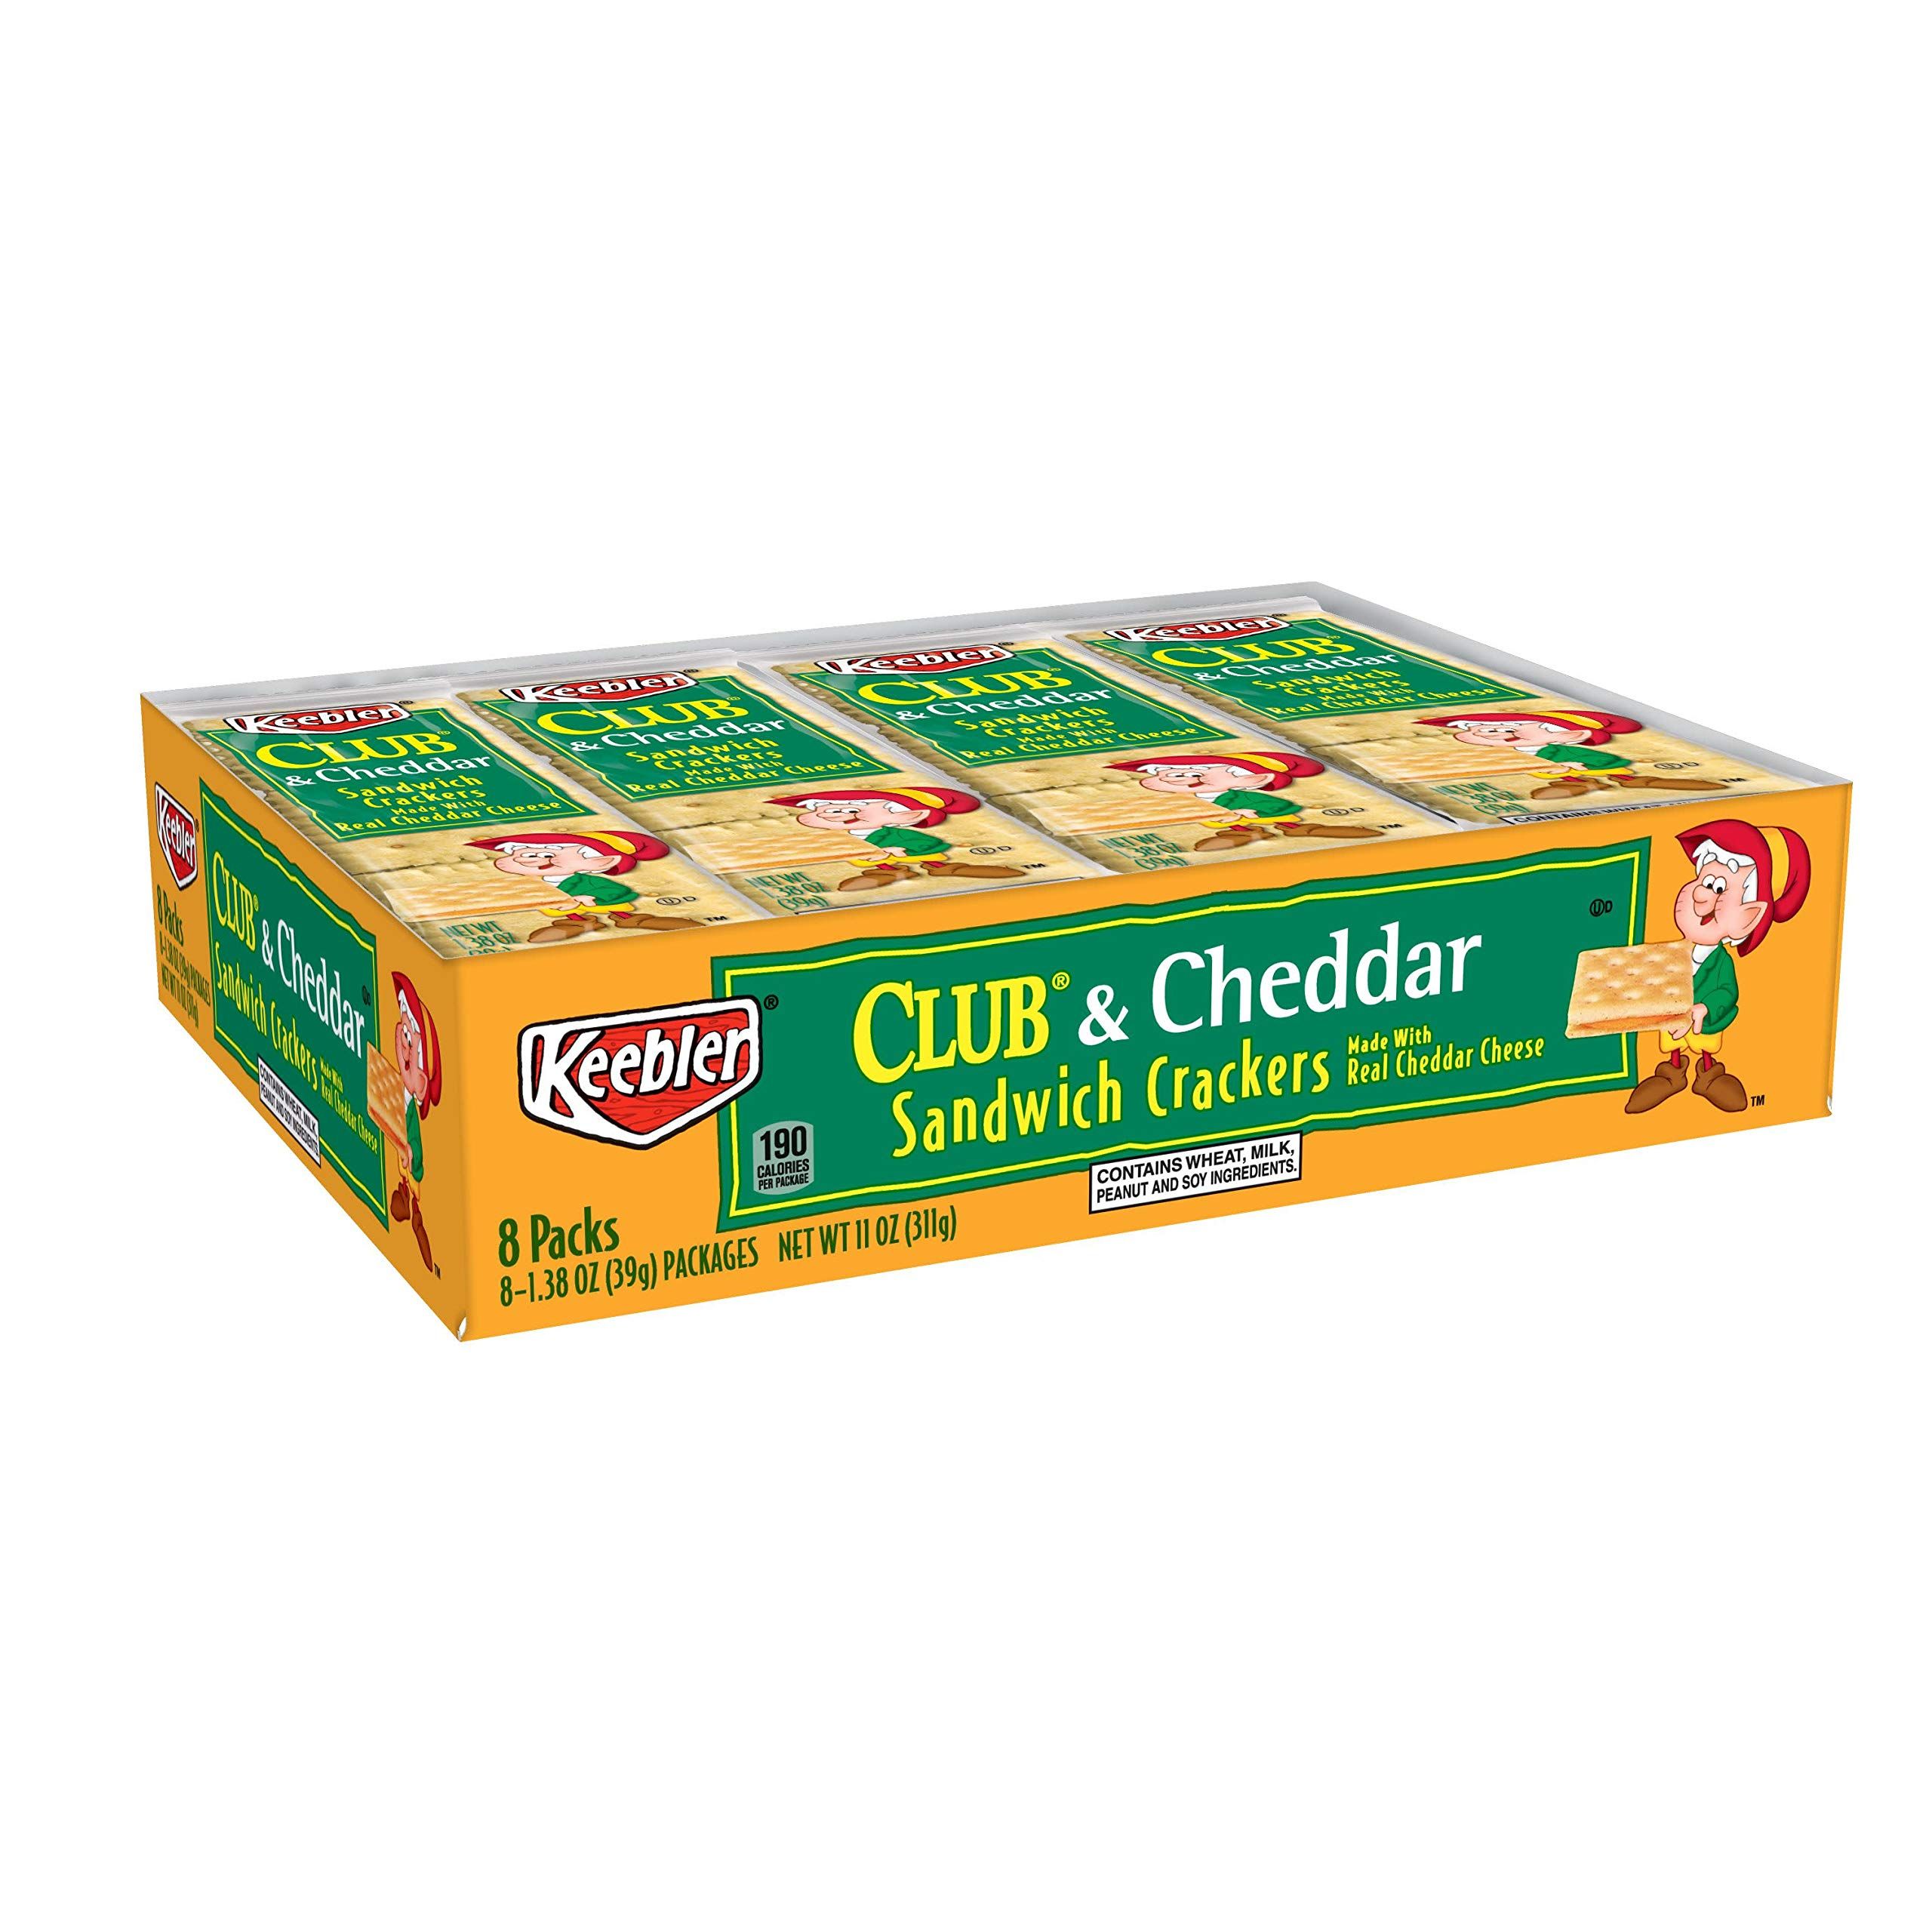 Keebler Club and Cheddar Sandwich Crackers, Single Serve, 1.38 oz Packages (8 Count)(Pack of 12) by Club Crackers